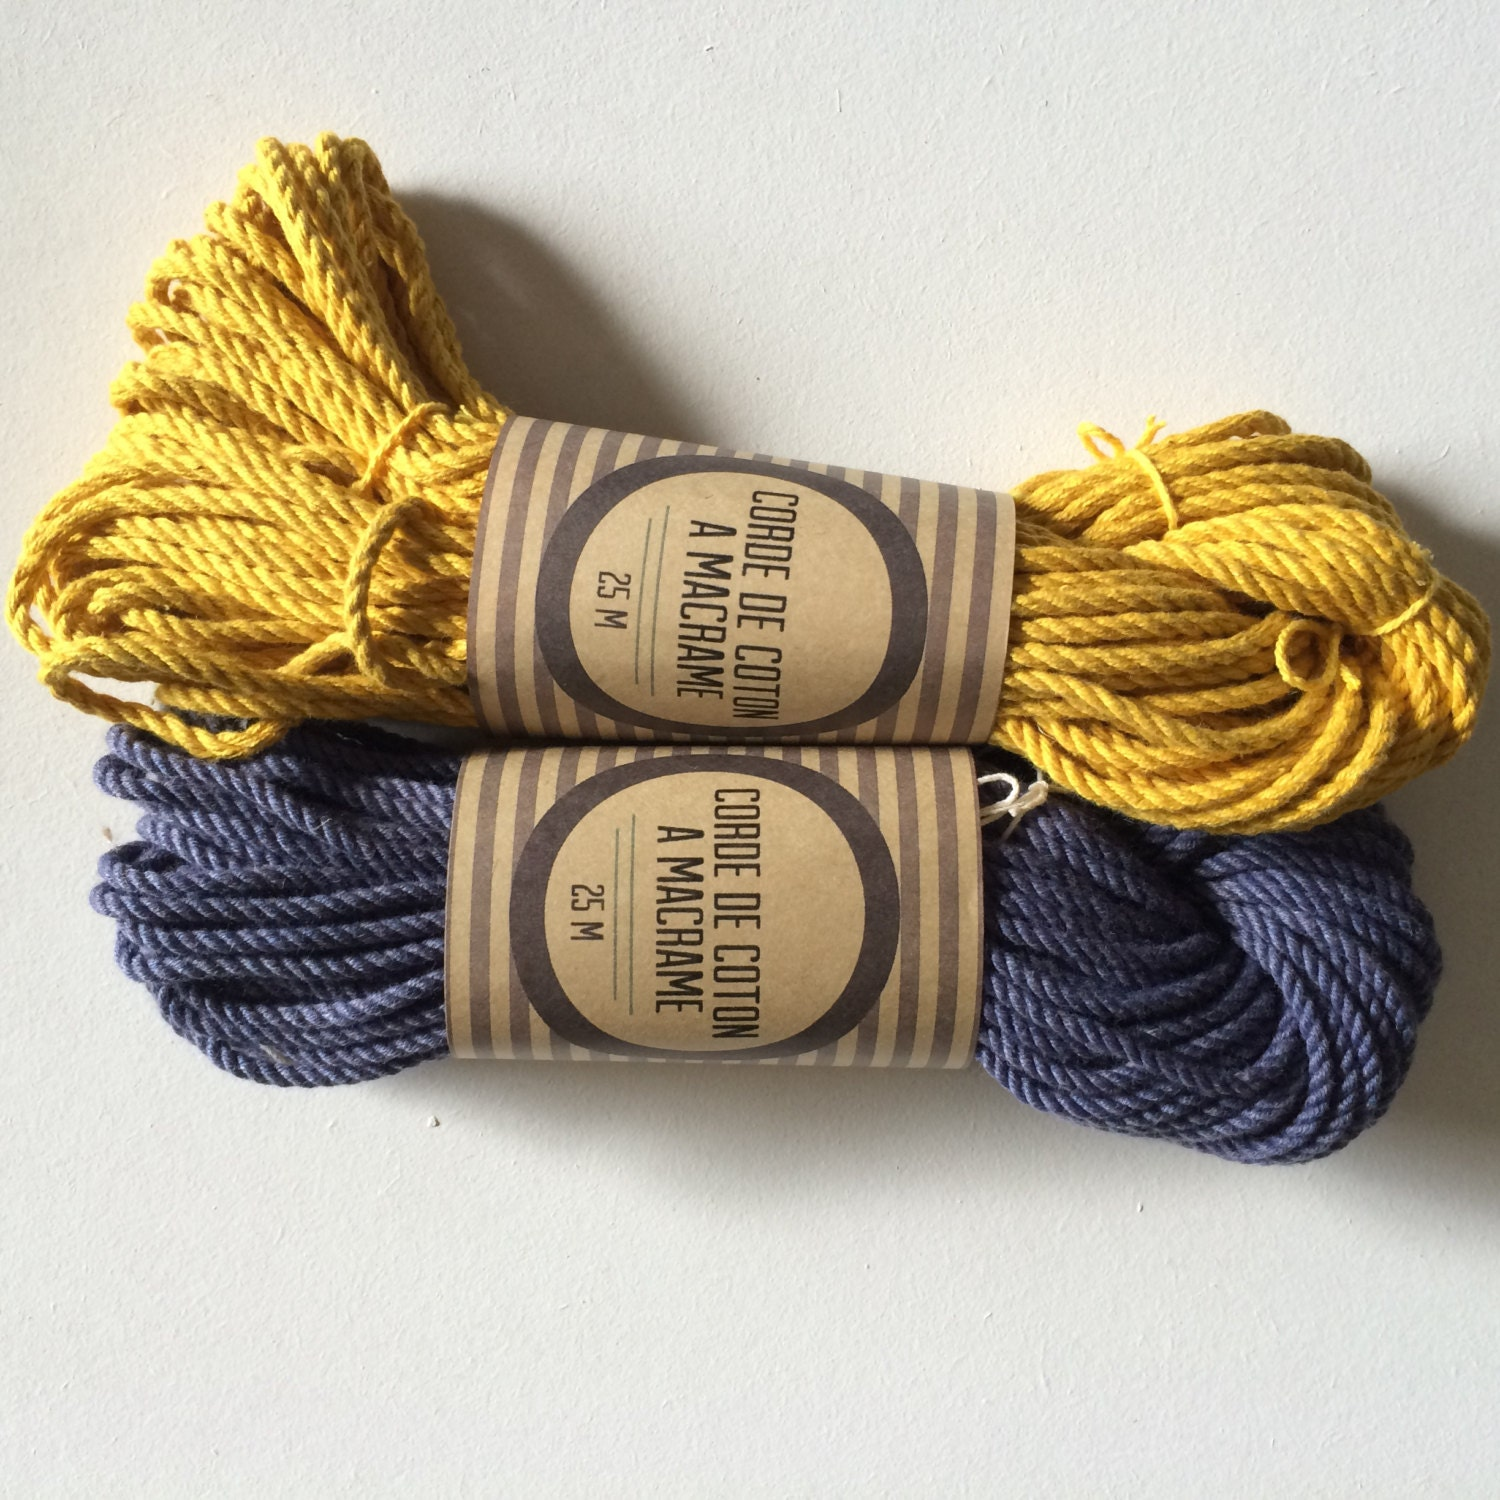 Macrame cotton cord, 100 ft (30 m), 3 mm, beautiful quality